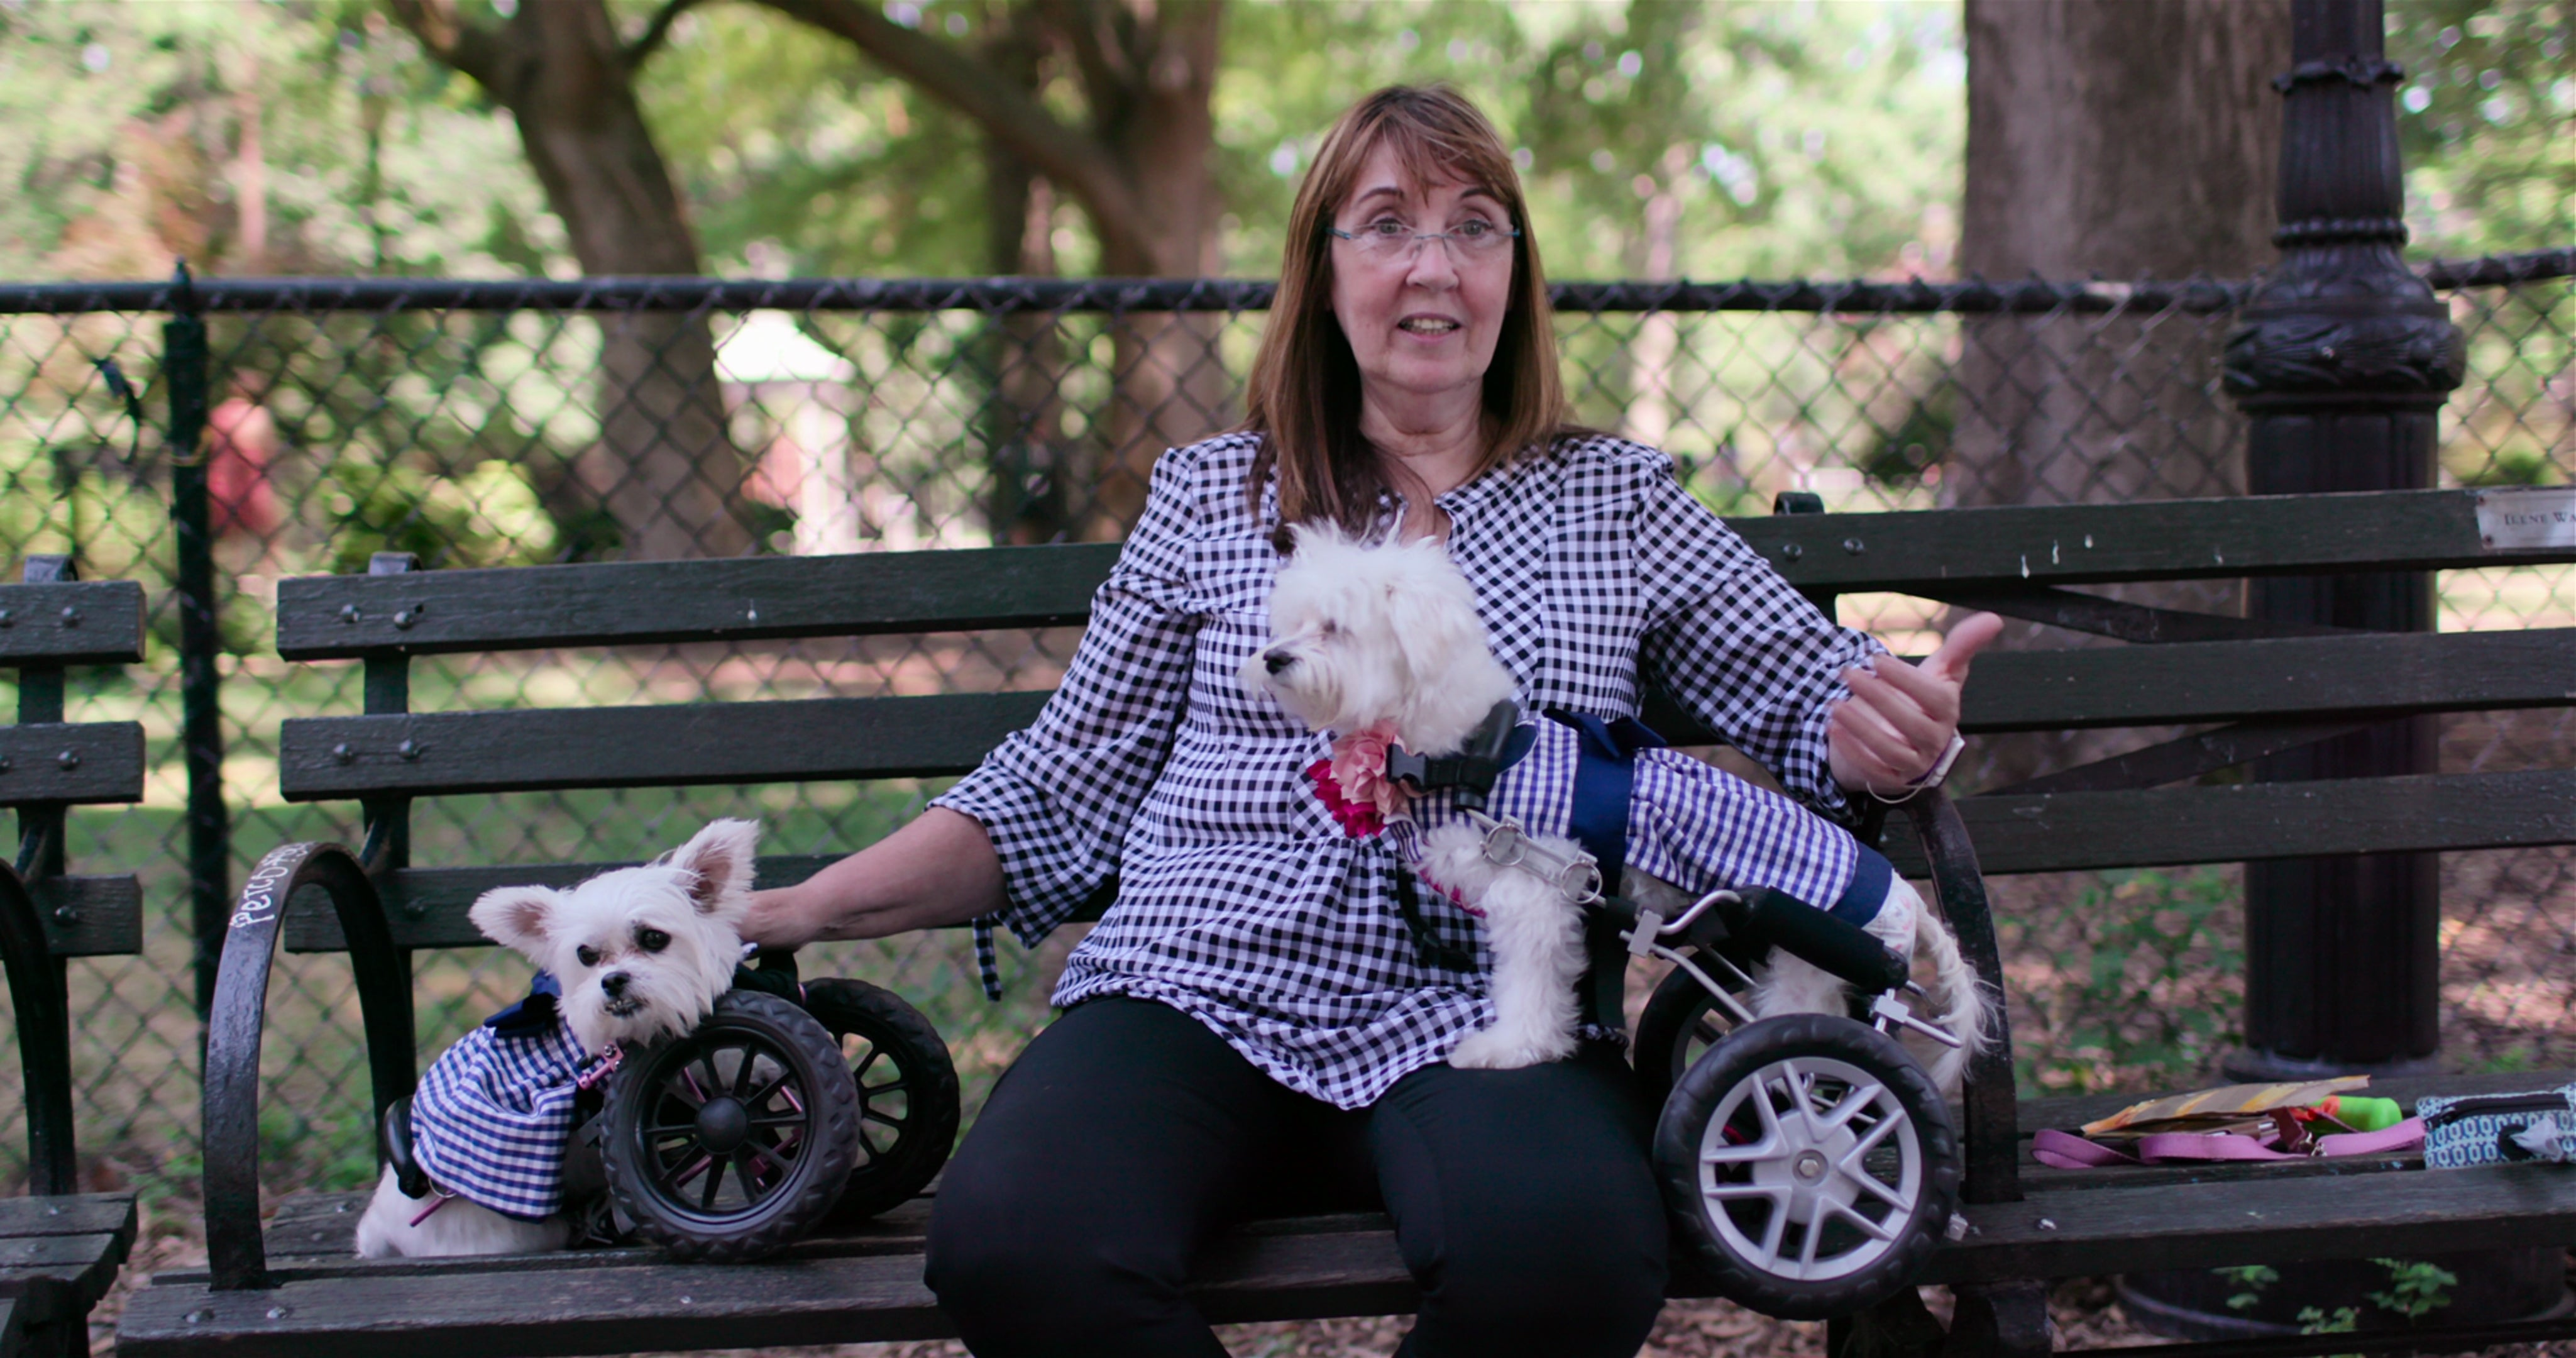 A woman and two dogs, both with wheeled leg supports, sit on a park bench.